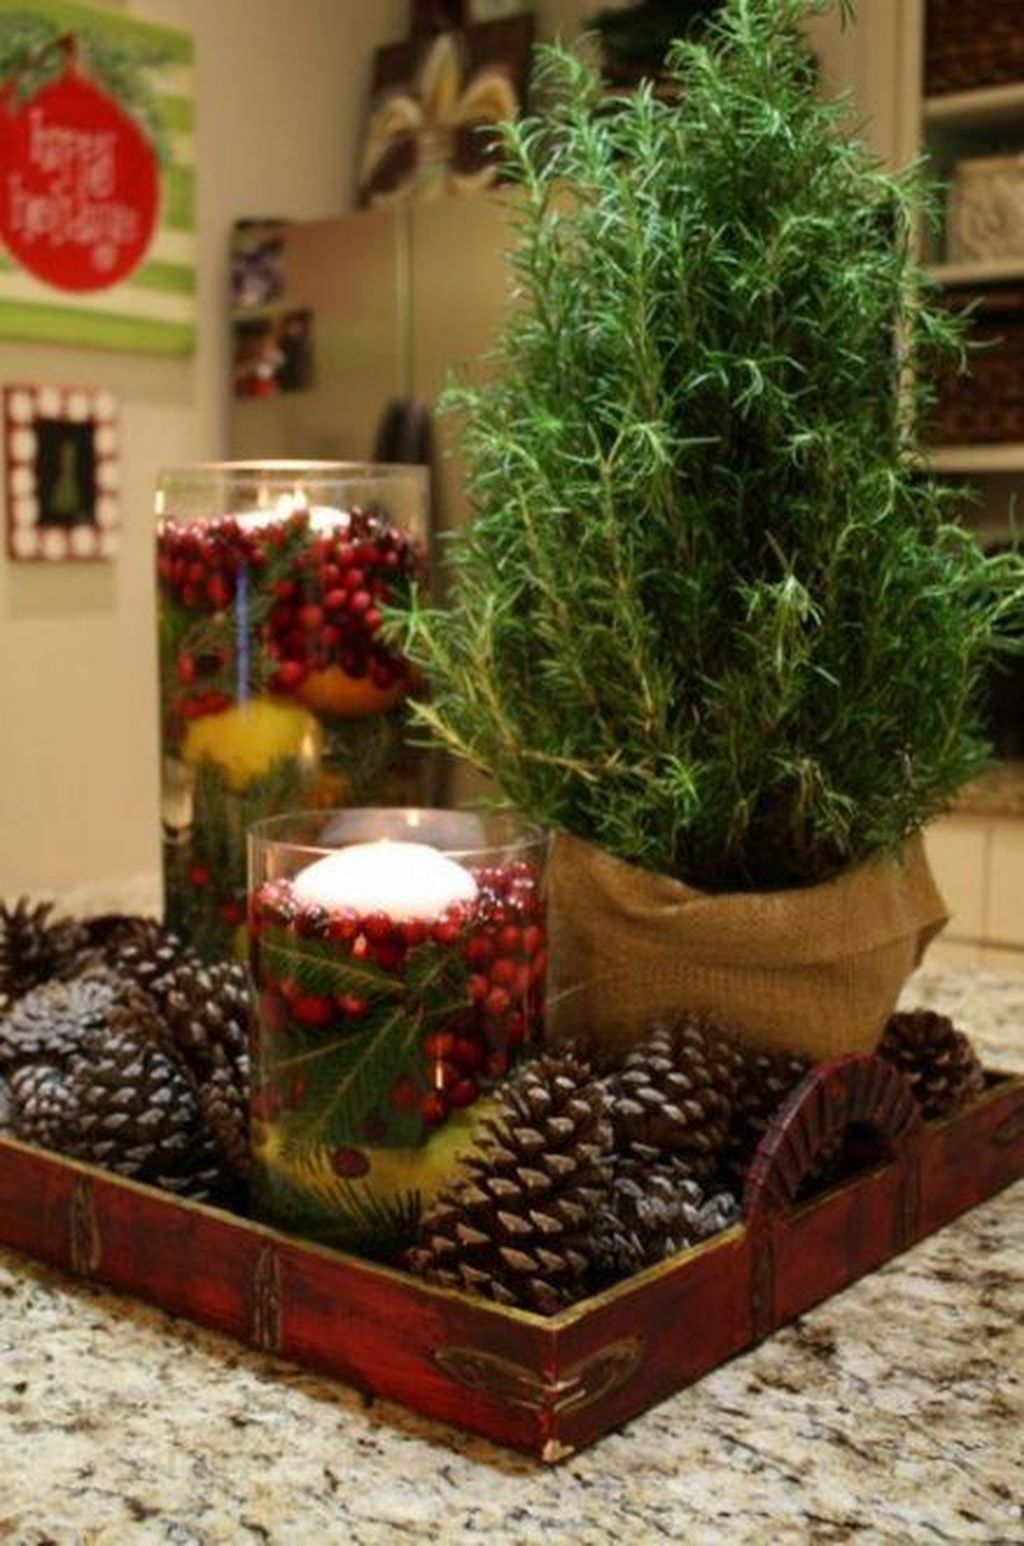 Popular Christmas Decor Ideas For Kitchen Island 12